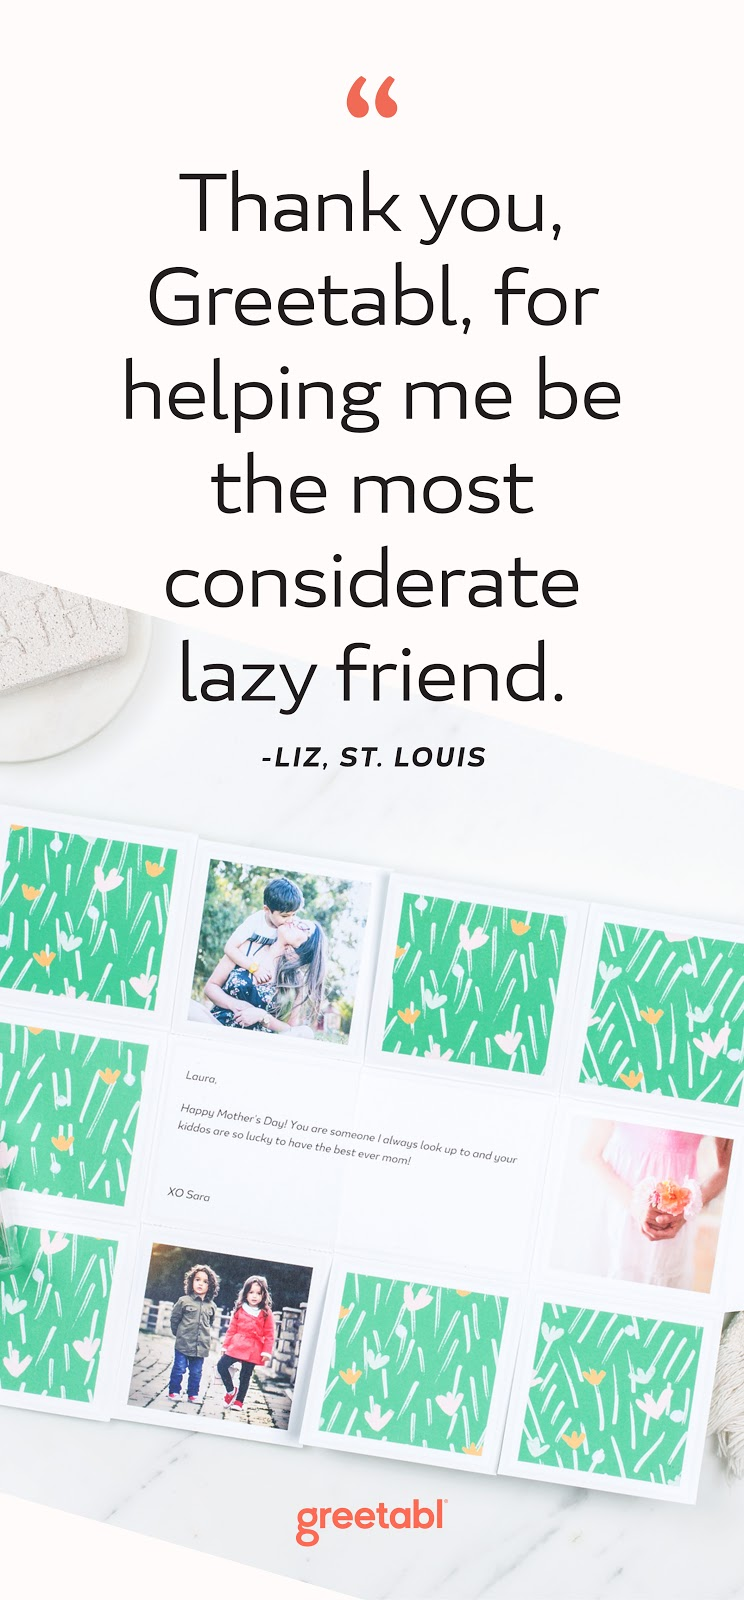 """Review that says, """"Thank you, Greetabl, for helping me be the most considerate lazy friend."""""""